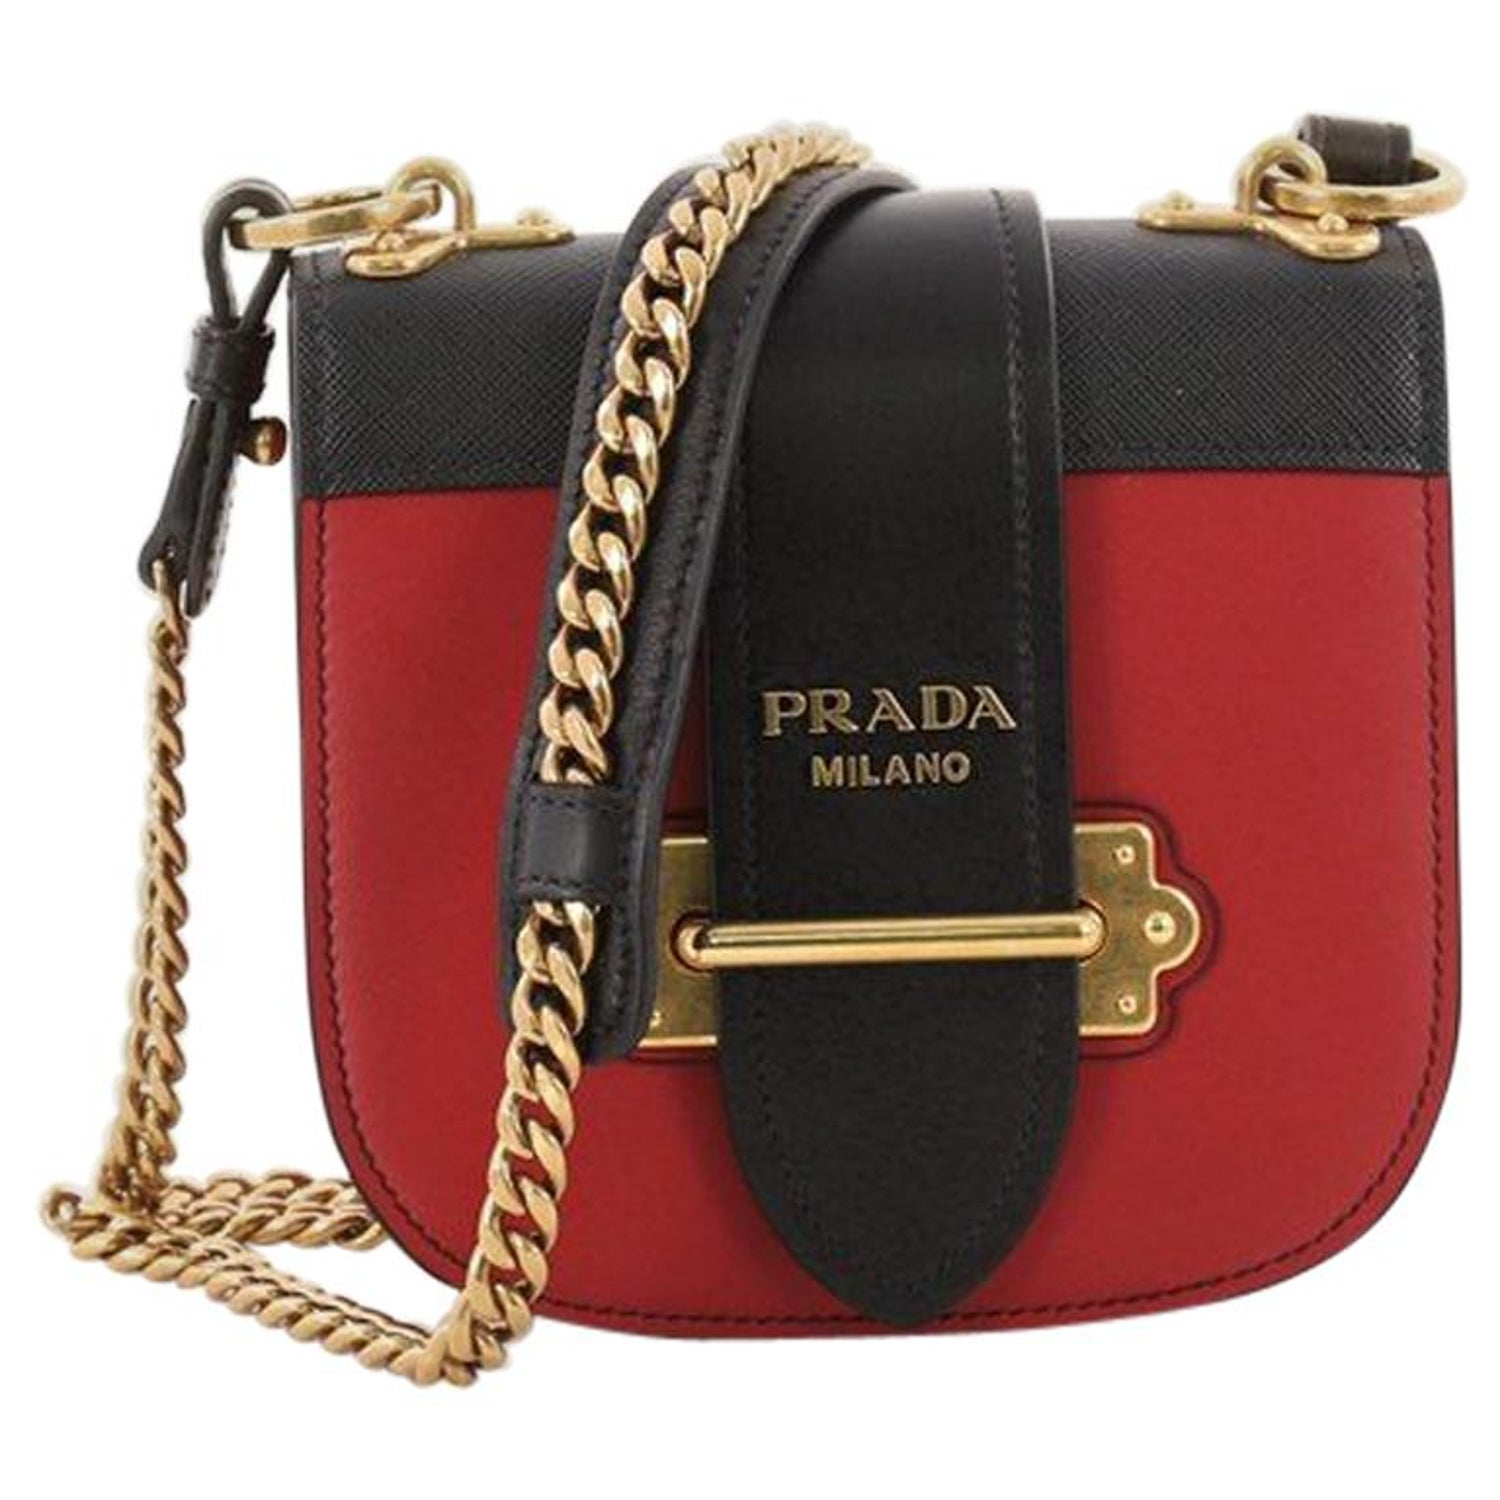 8bc56279d675 Prada Pionniere Crossbody Bag City Calfskin with Saffiano Leather Small at  1stdibs